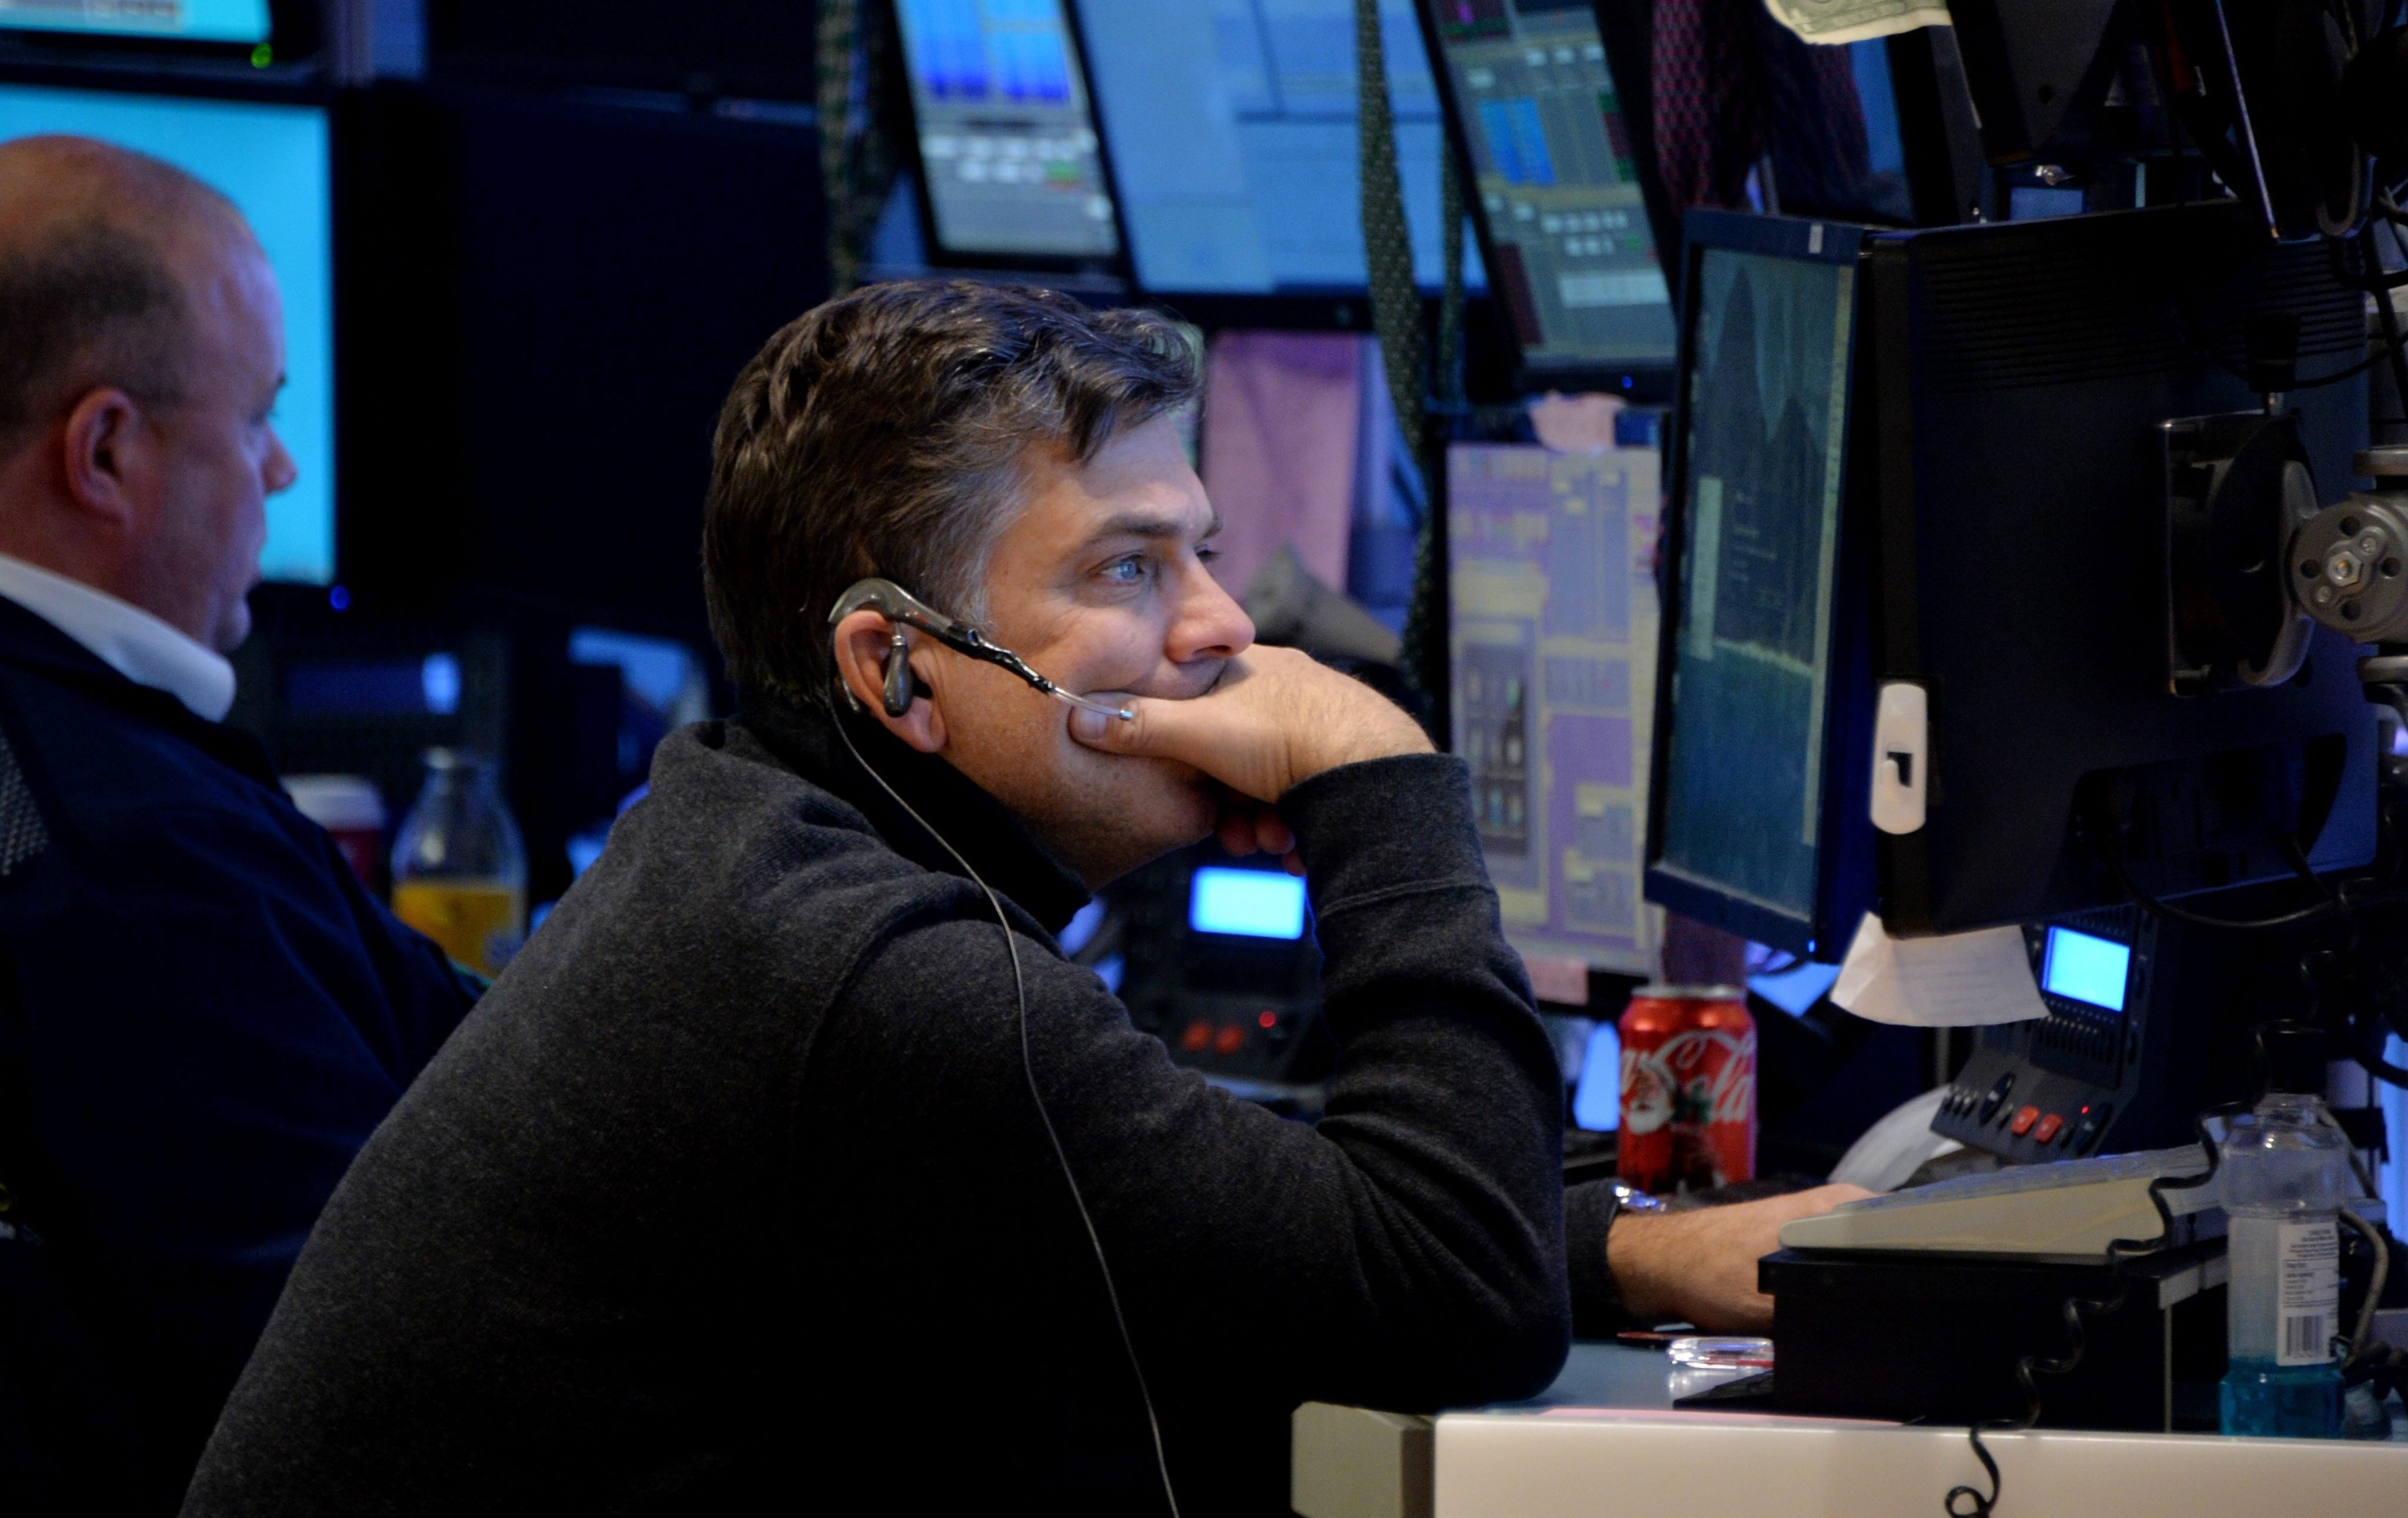 A trader works on the floor of the New York Stock Exchange at the end of the trading day in New York on Dec. 12, 2014.